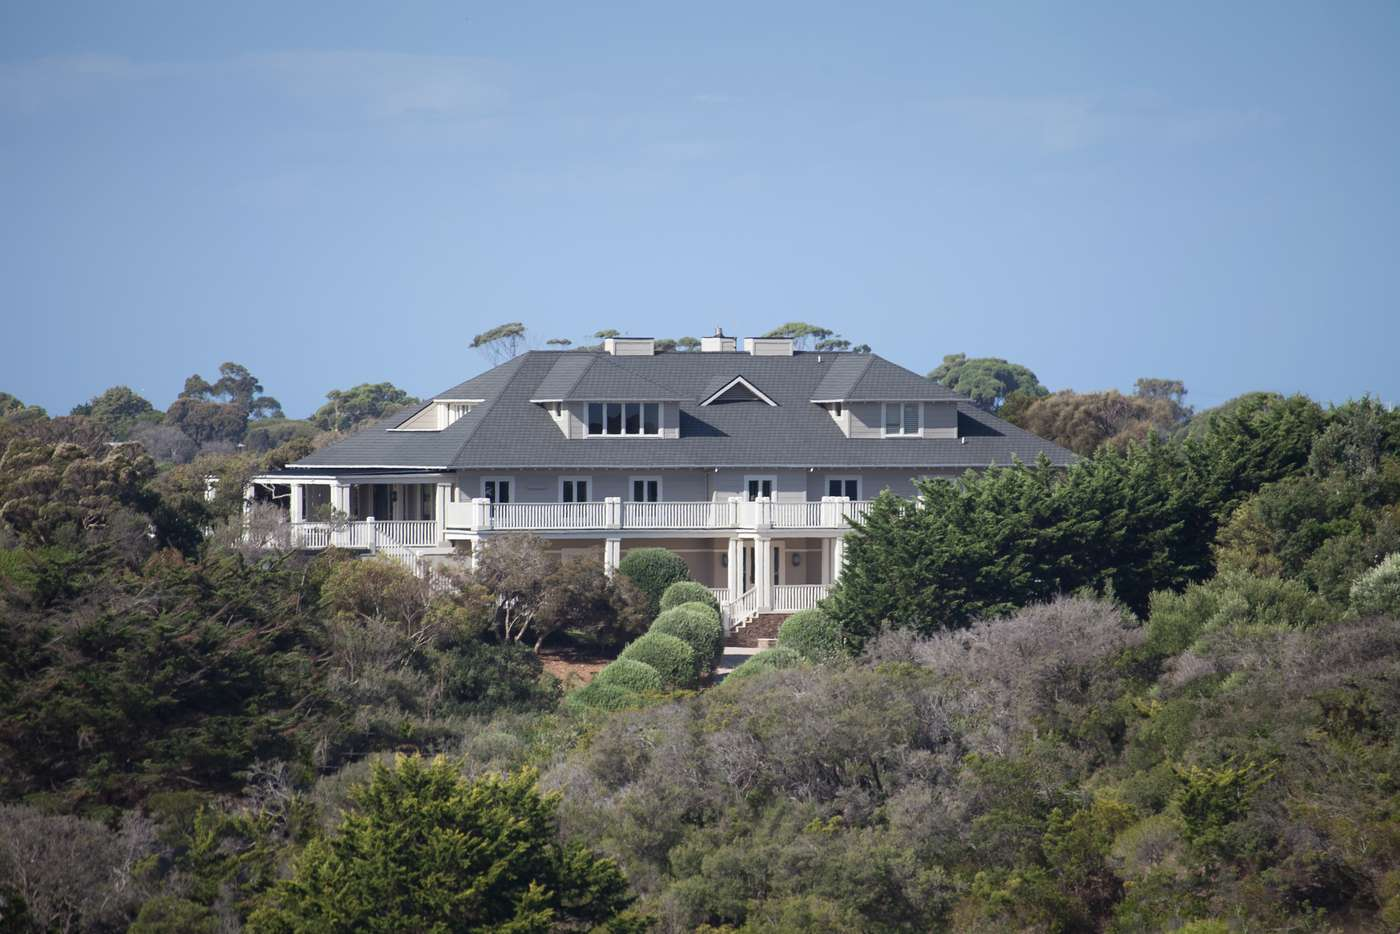 Main view of Homely house listing, 86 Elizabeth Road, Portsea VIC 3944